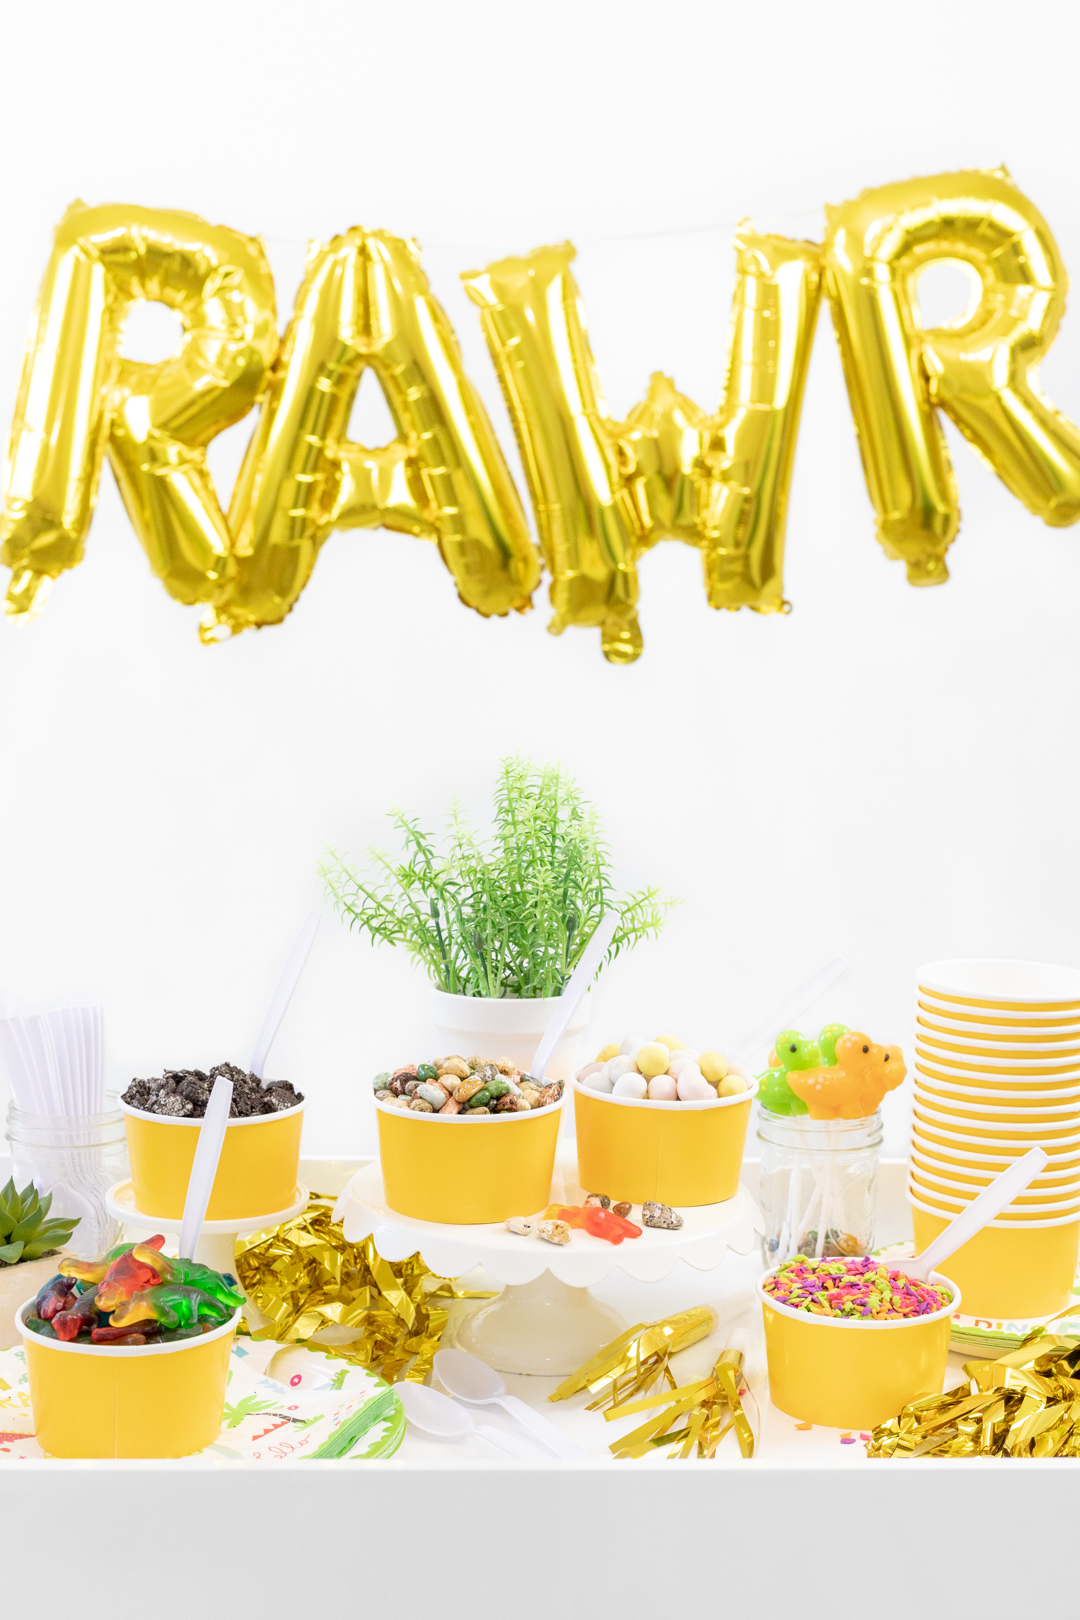 Rawr letter balloon with ice cream toppings with a dinosaur theme